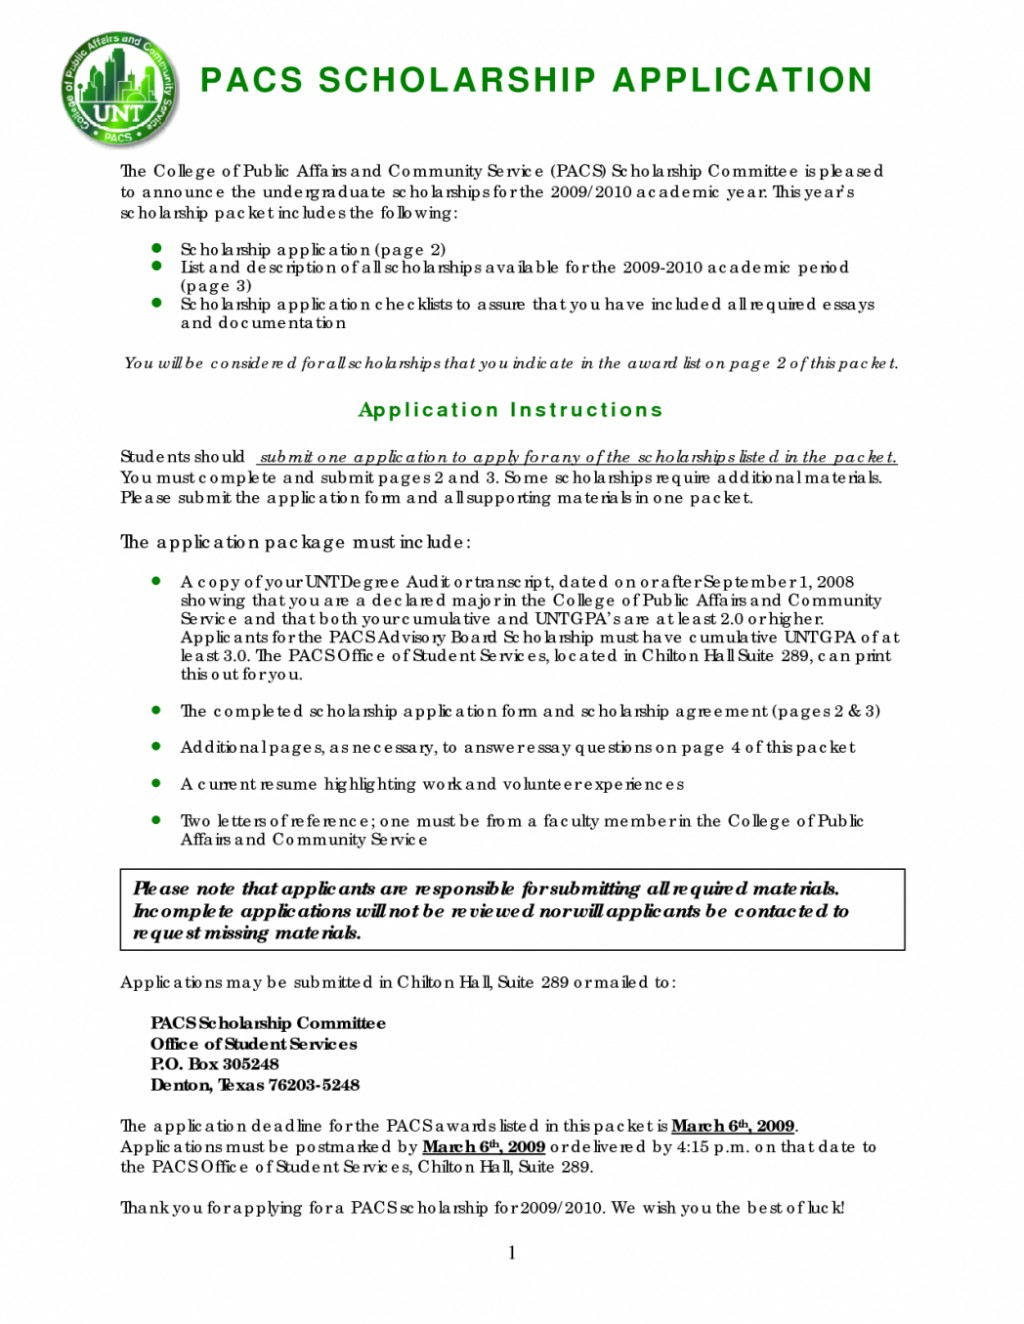 021 Essay Example Samples Of Essays For Scholarships Scholarship Application Sample Pdf 11exu Nursing College Examples Ideas Mba About Yourself 1048x1356 Imposing Non No High School Seniors 2019 Students 2017 Large